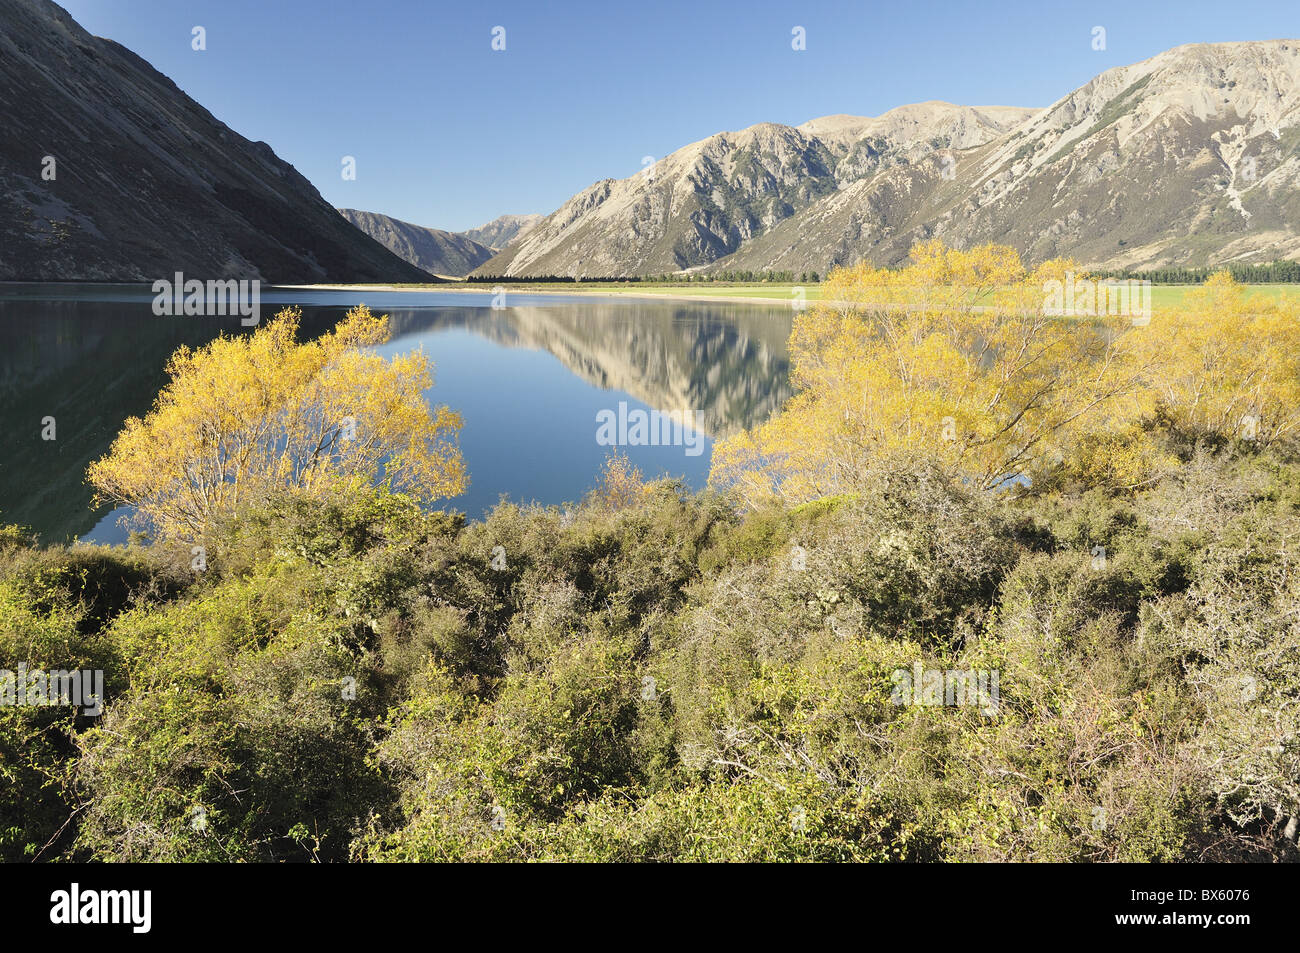 Lake Pearson, Canterbury high country, South Island, New Zealand, Pacific - Stock Image